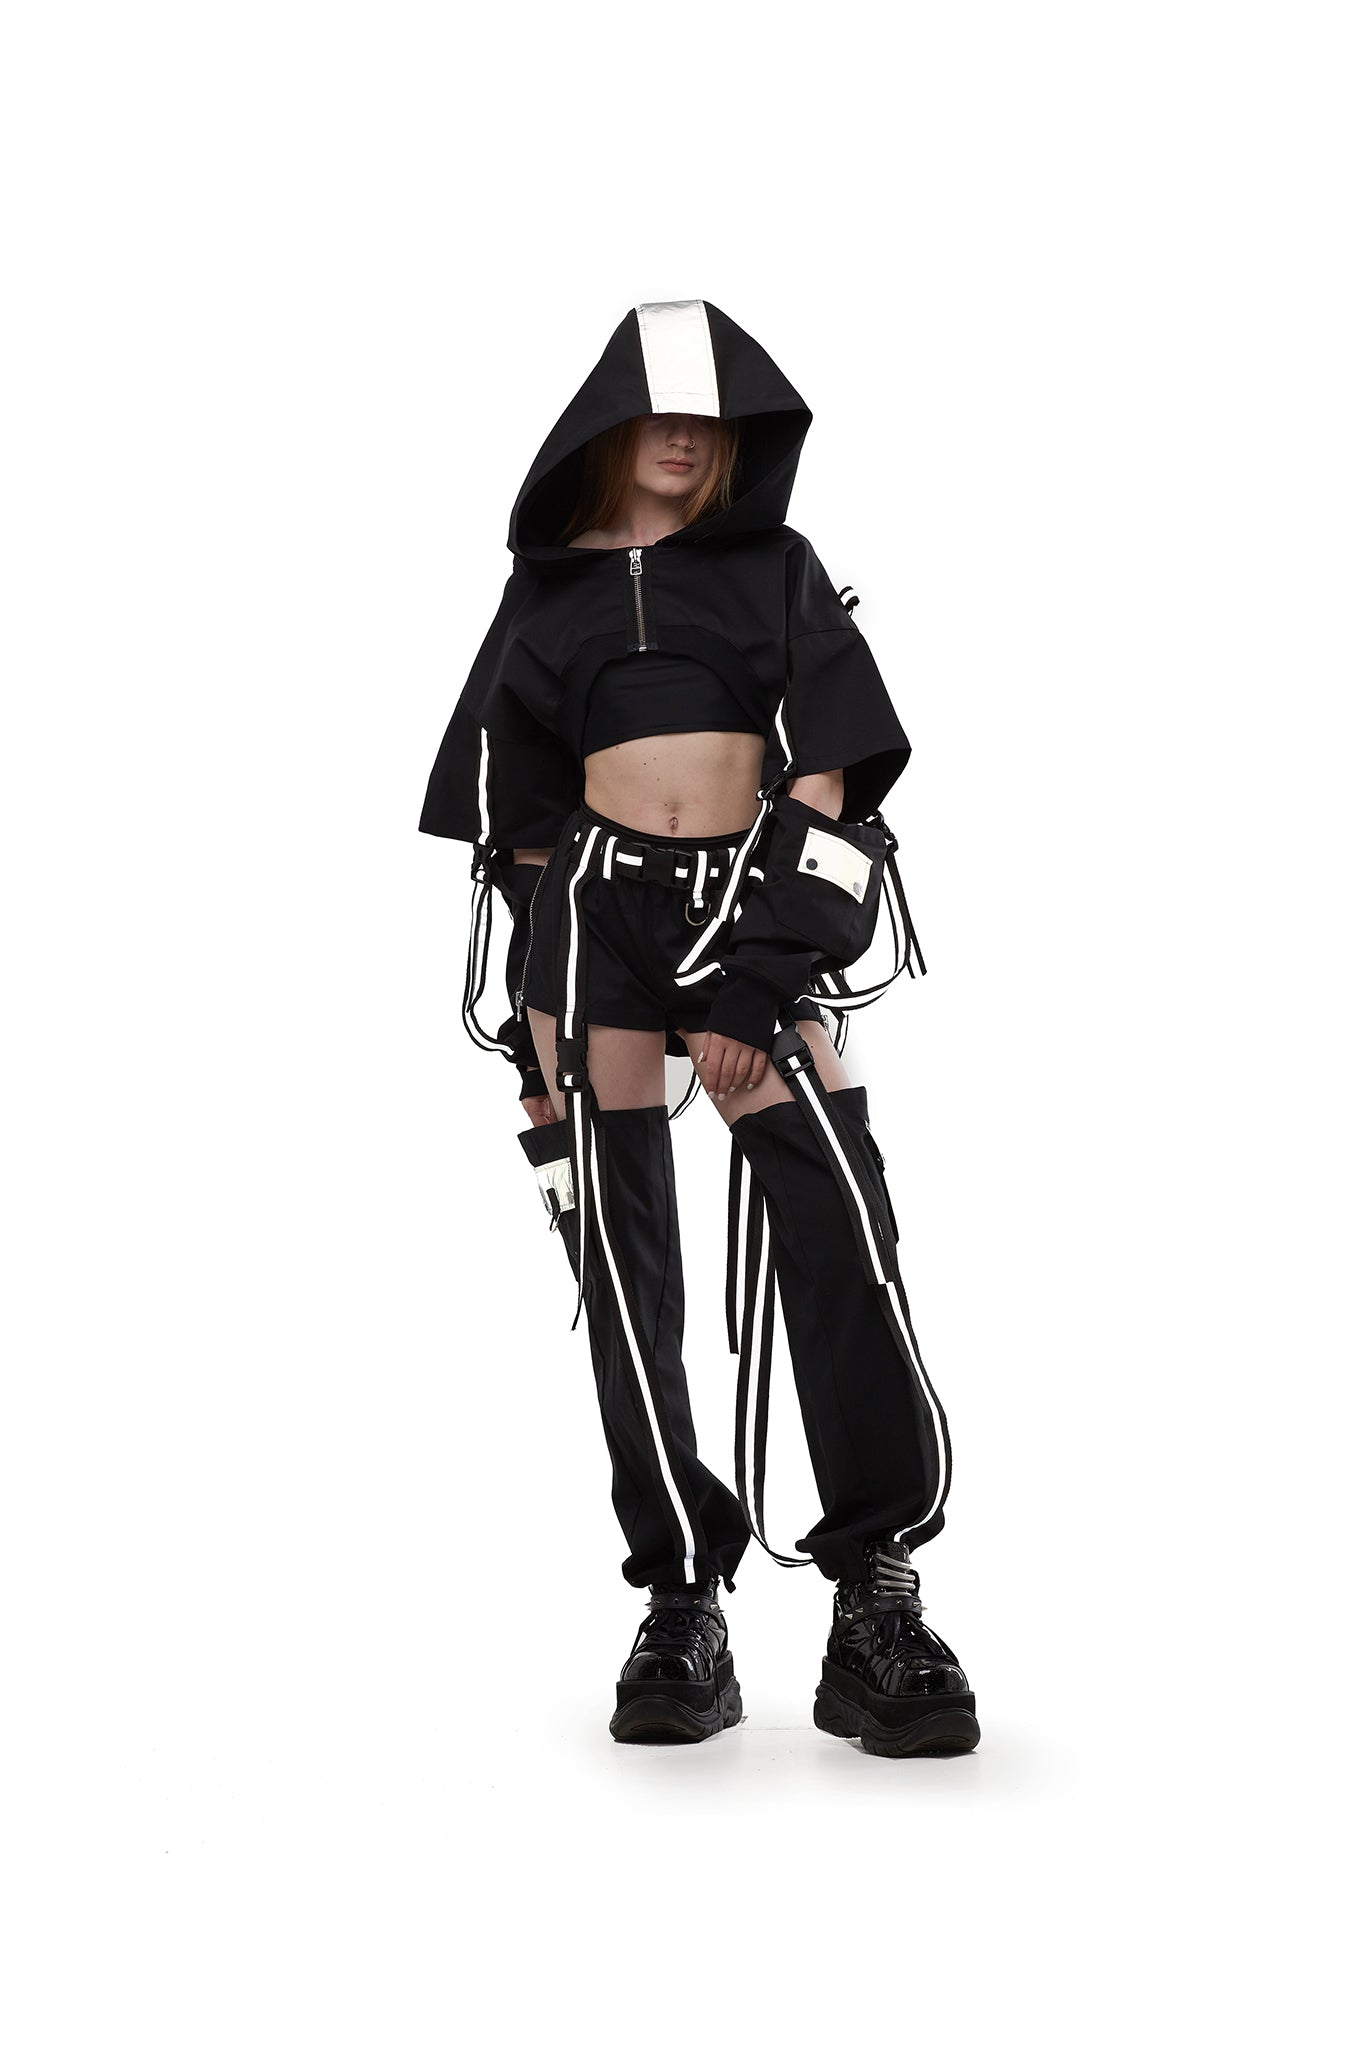 Hooded shrug in Black with reflective straps.